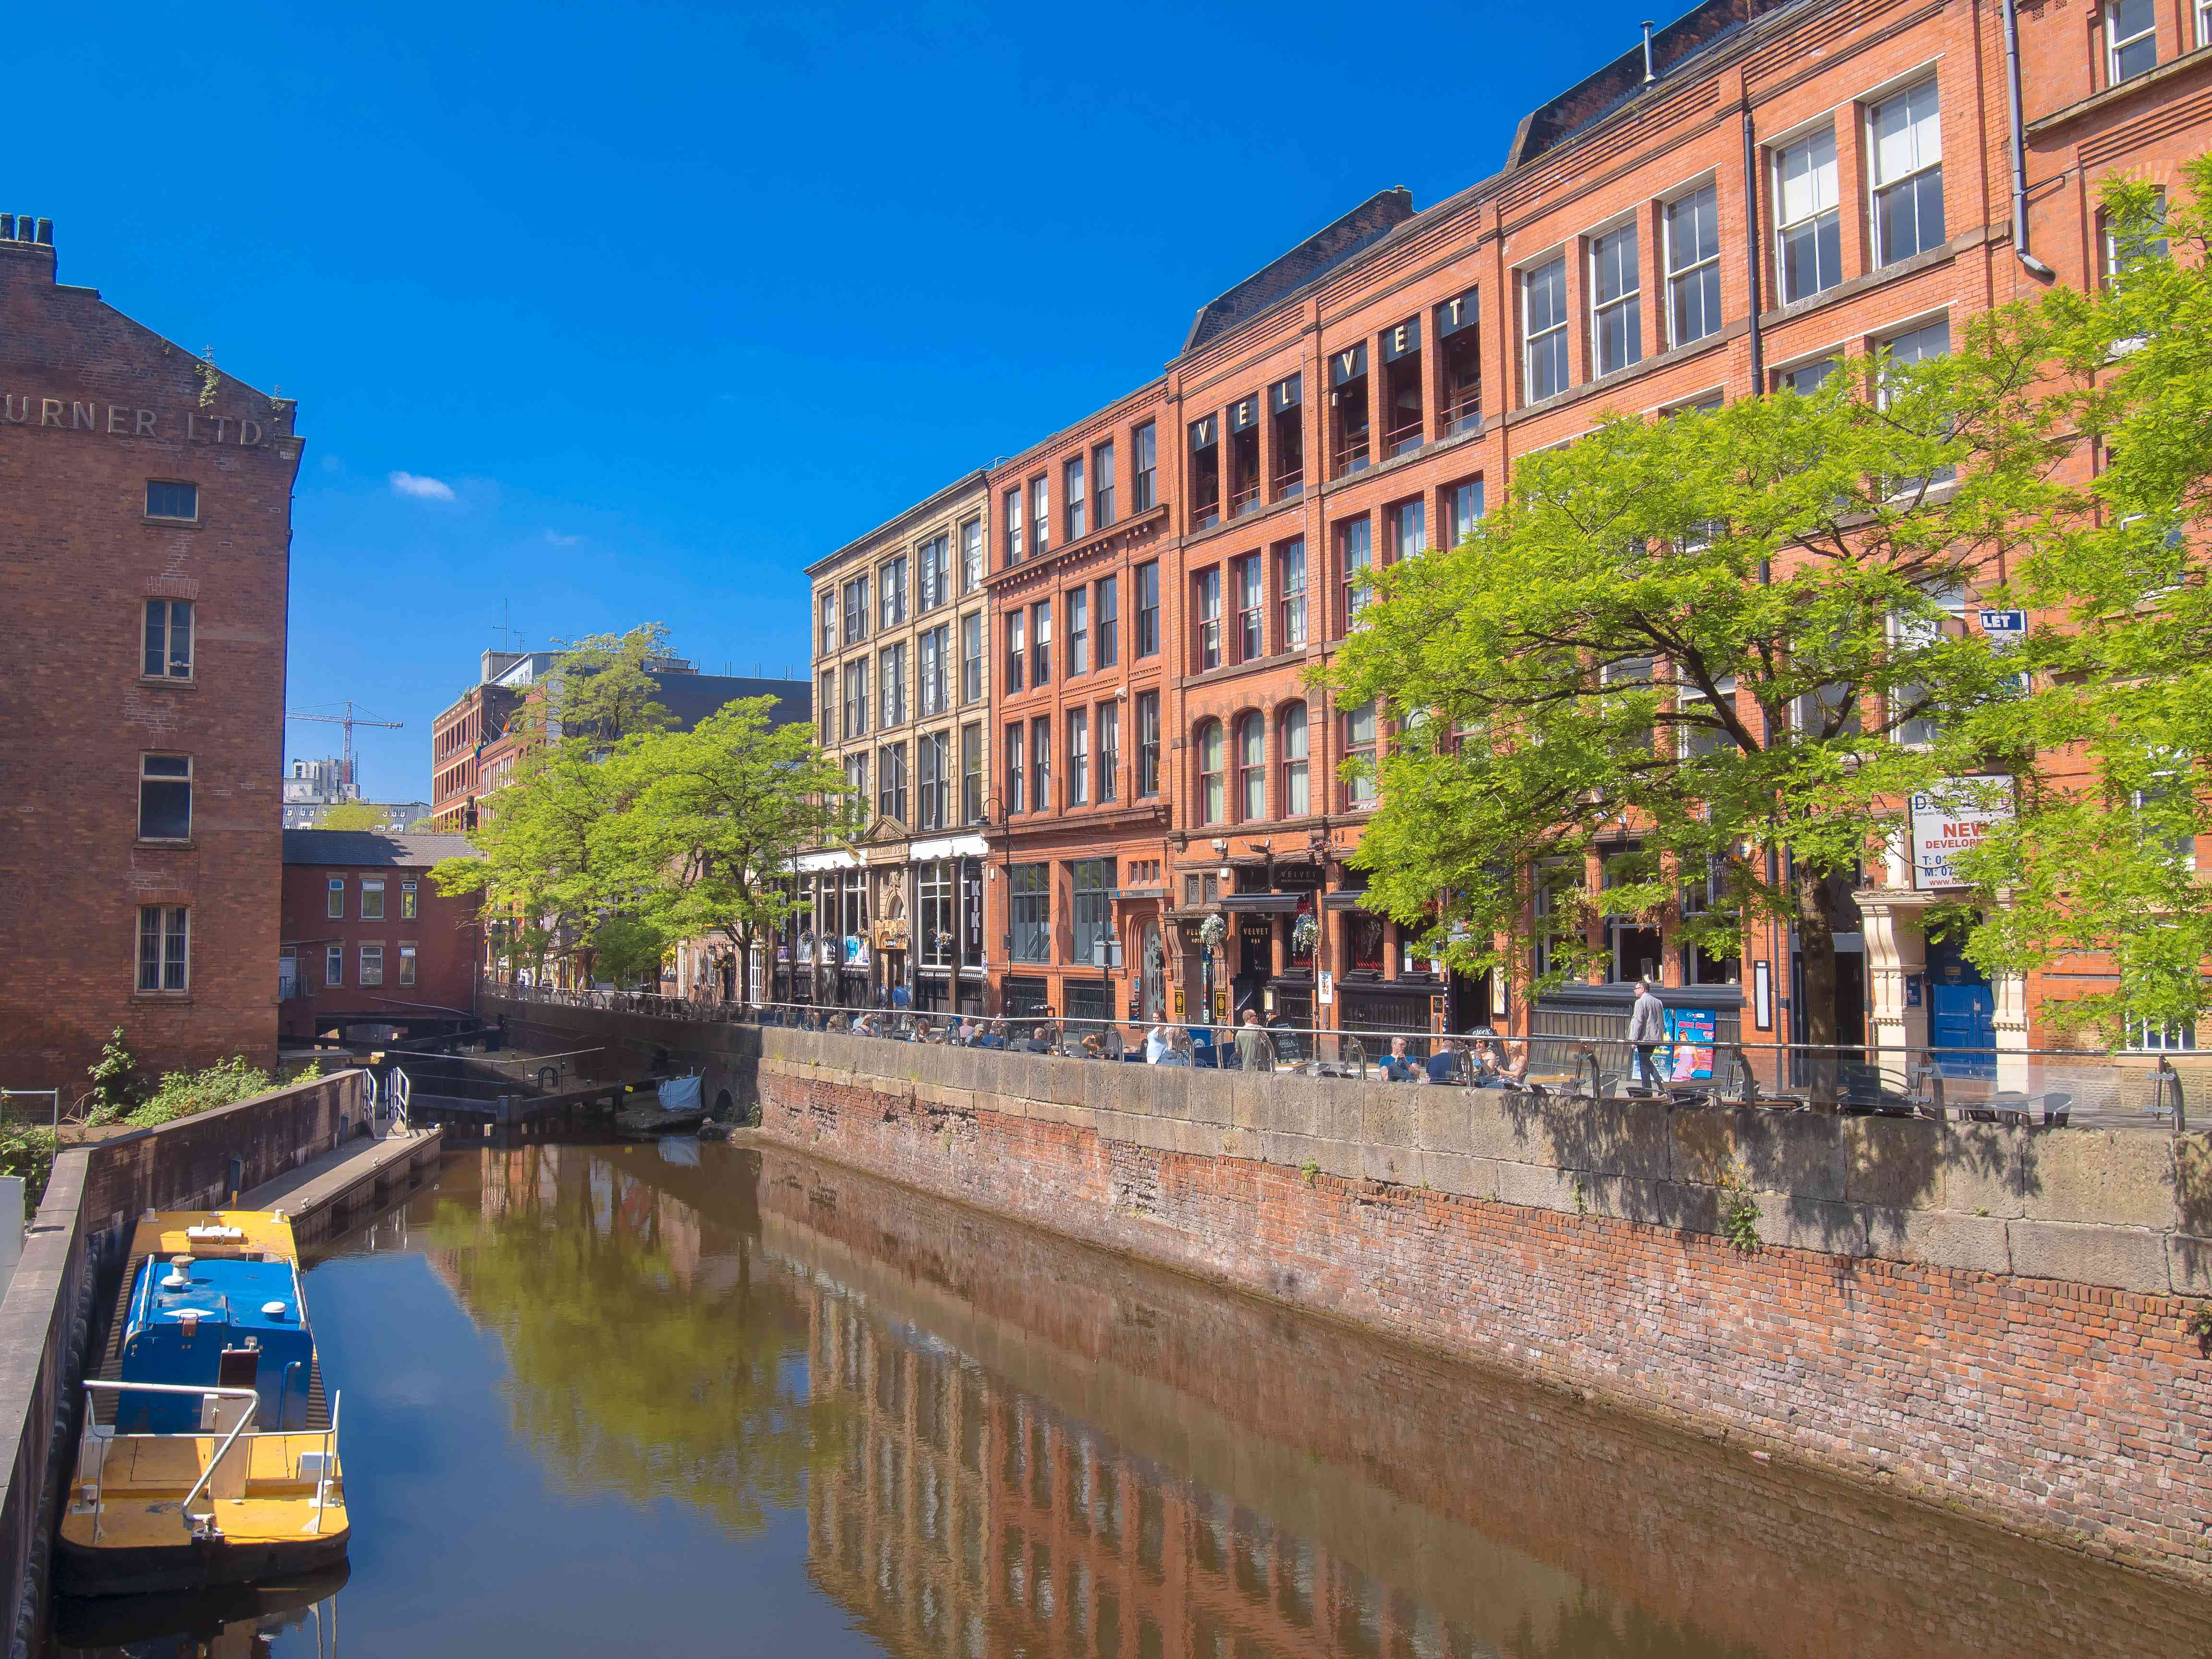 View of a canal and red brick buildings in the Manchester Gay Village